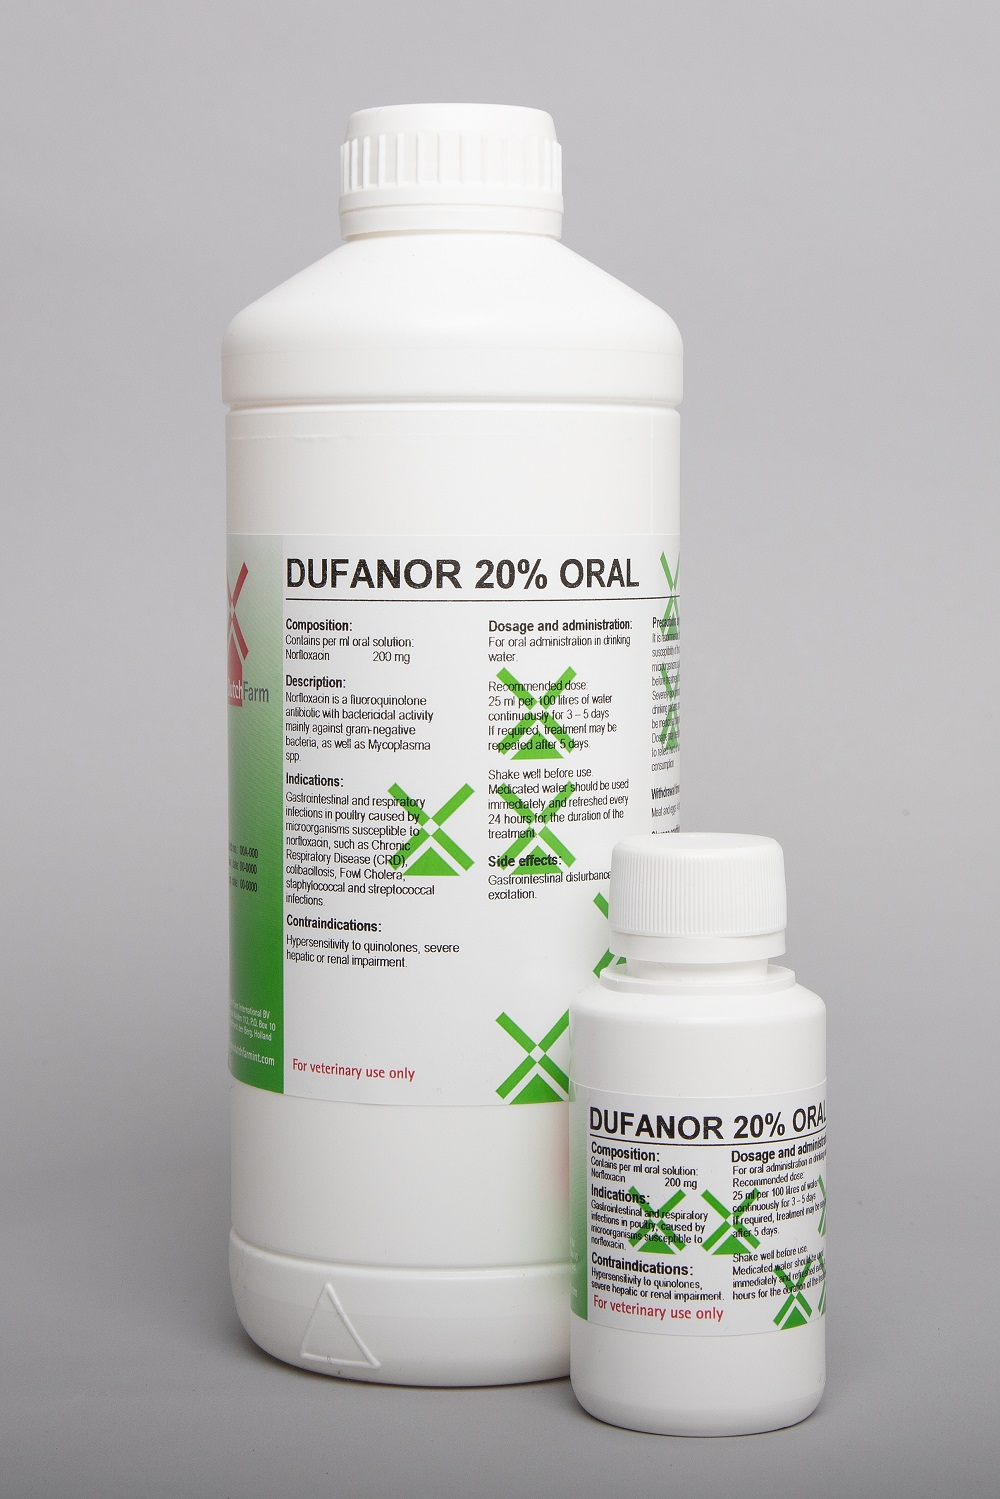 Dufanor 20% Oral